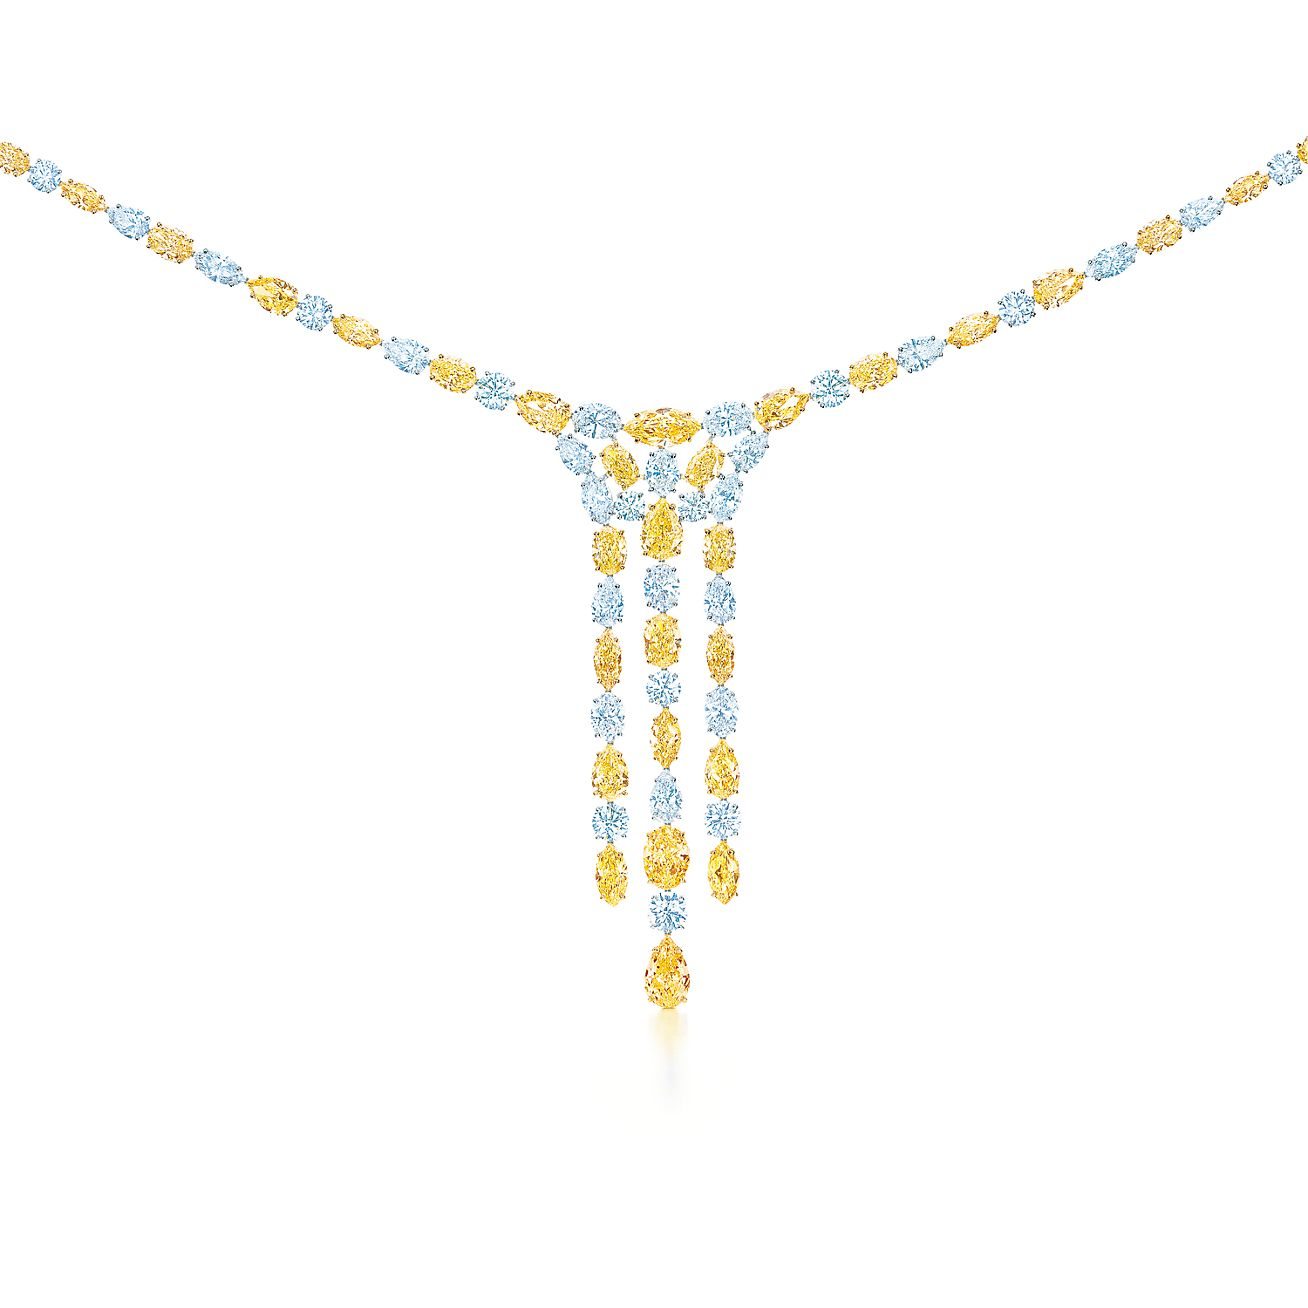 Cascade necklace in platinum with yellow and white diamonds cascade necklace cascade necklace mozeypictures Image collections